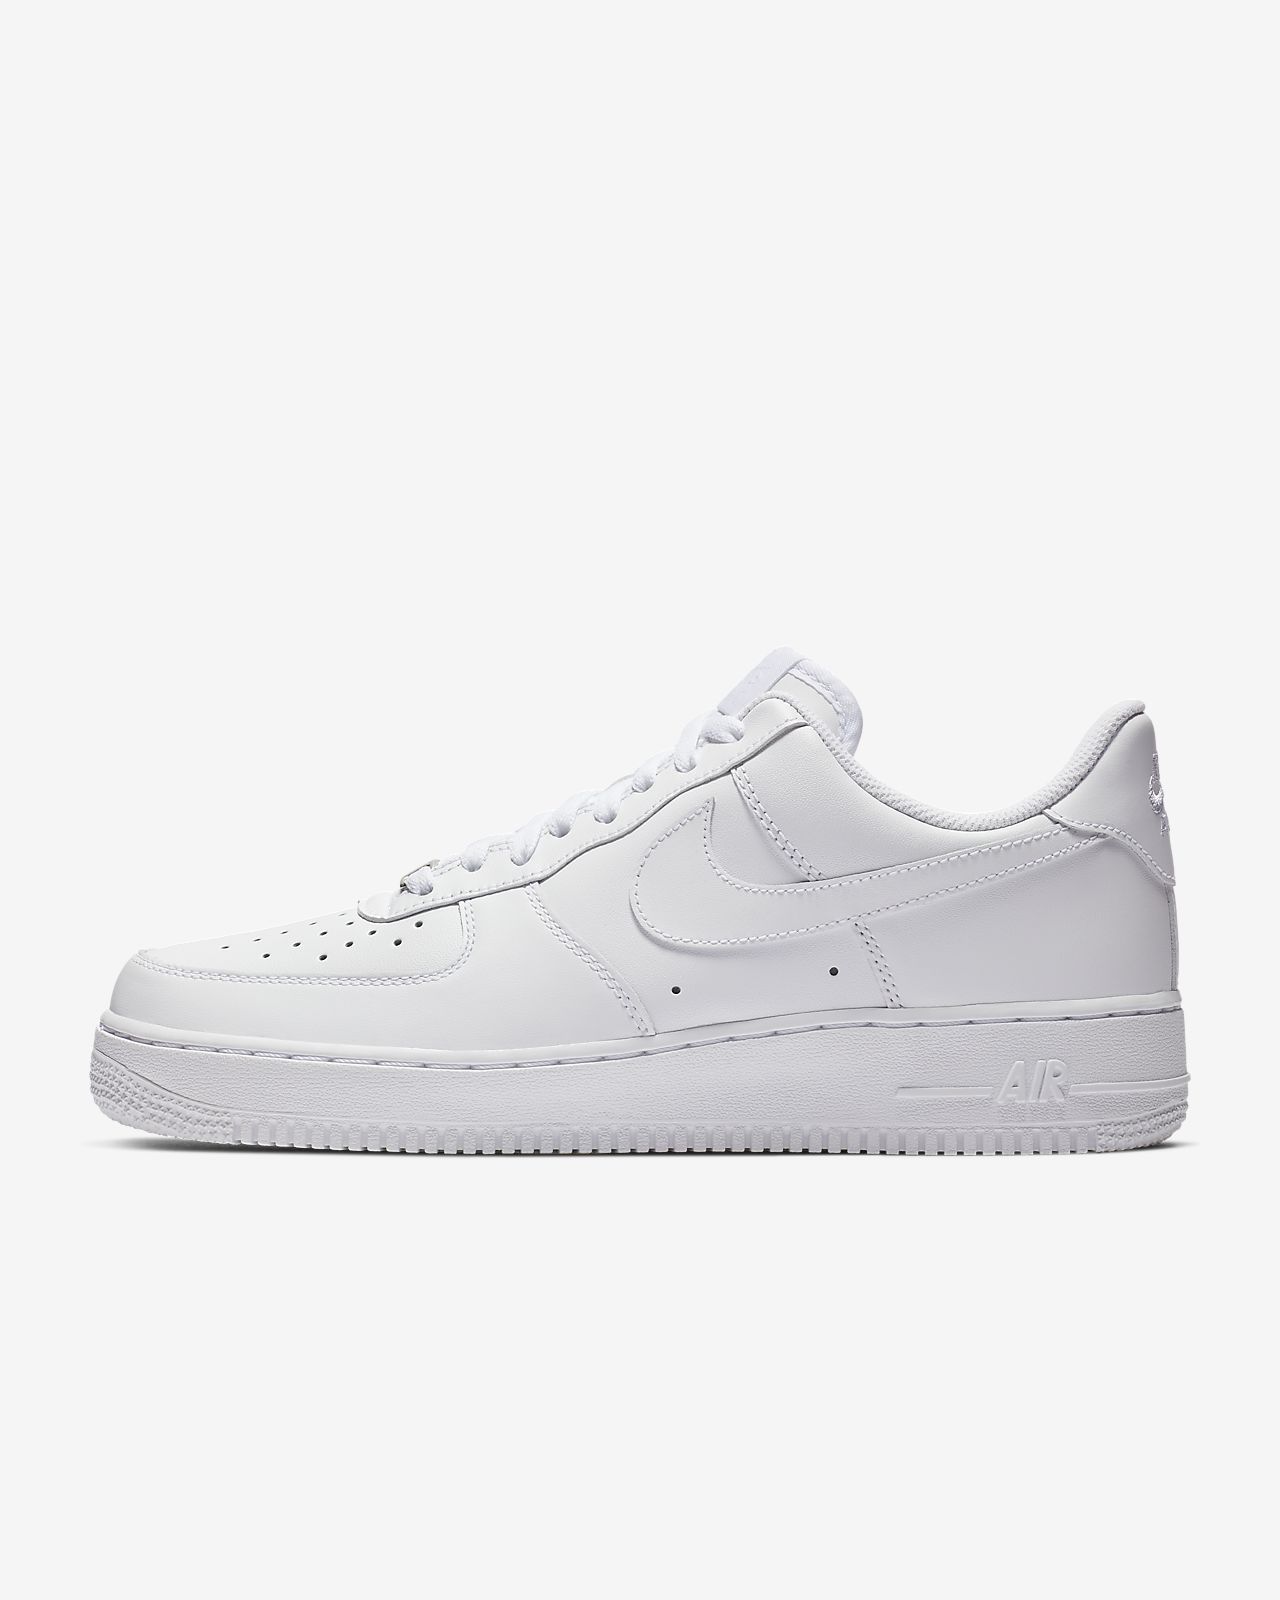 5c77a1be20 Nike Air Force 1 '07 Women's Shoe